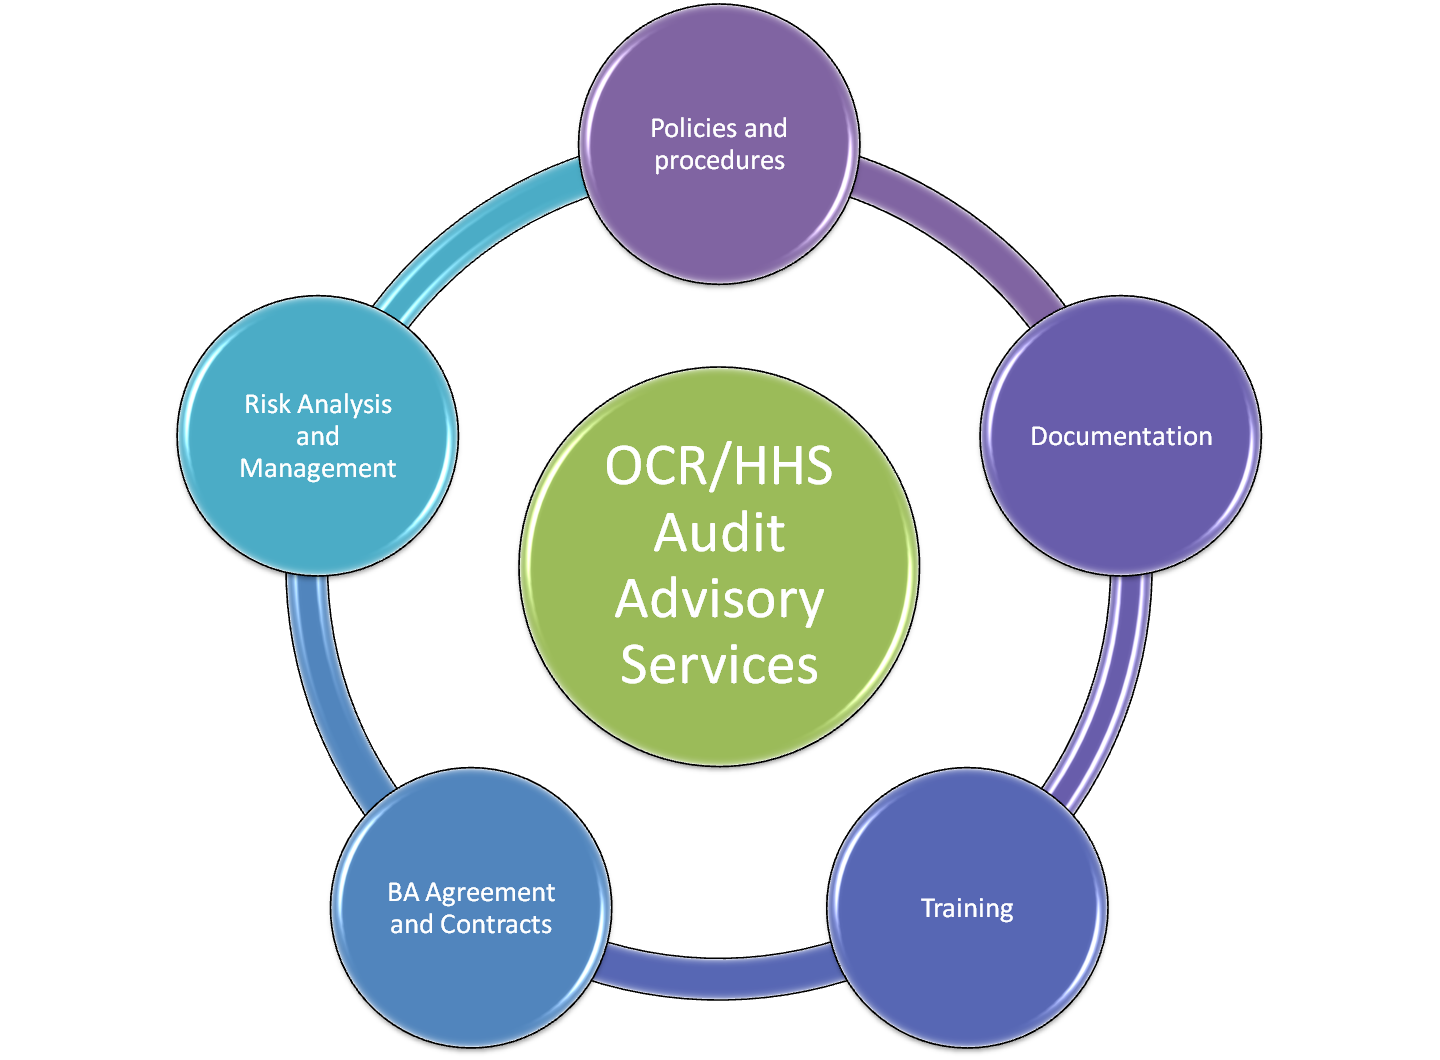 Practice for ocr hhs hipaa hitech audit by leveraging our expertise